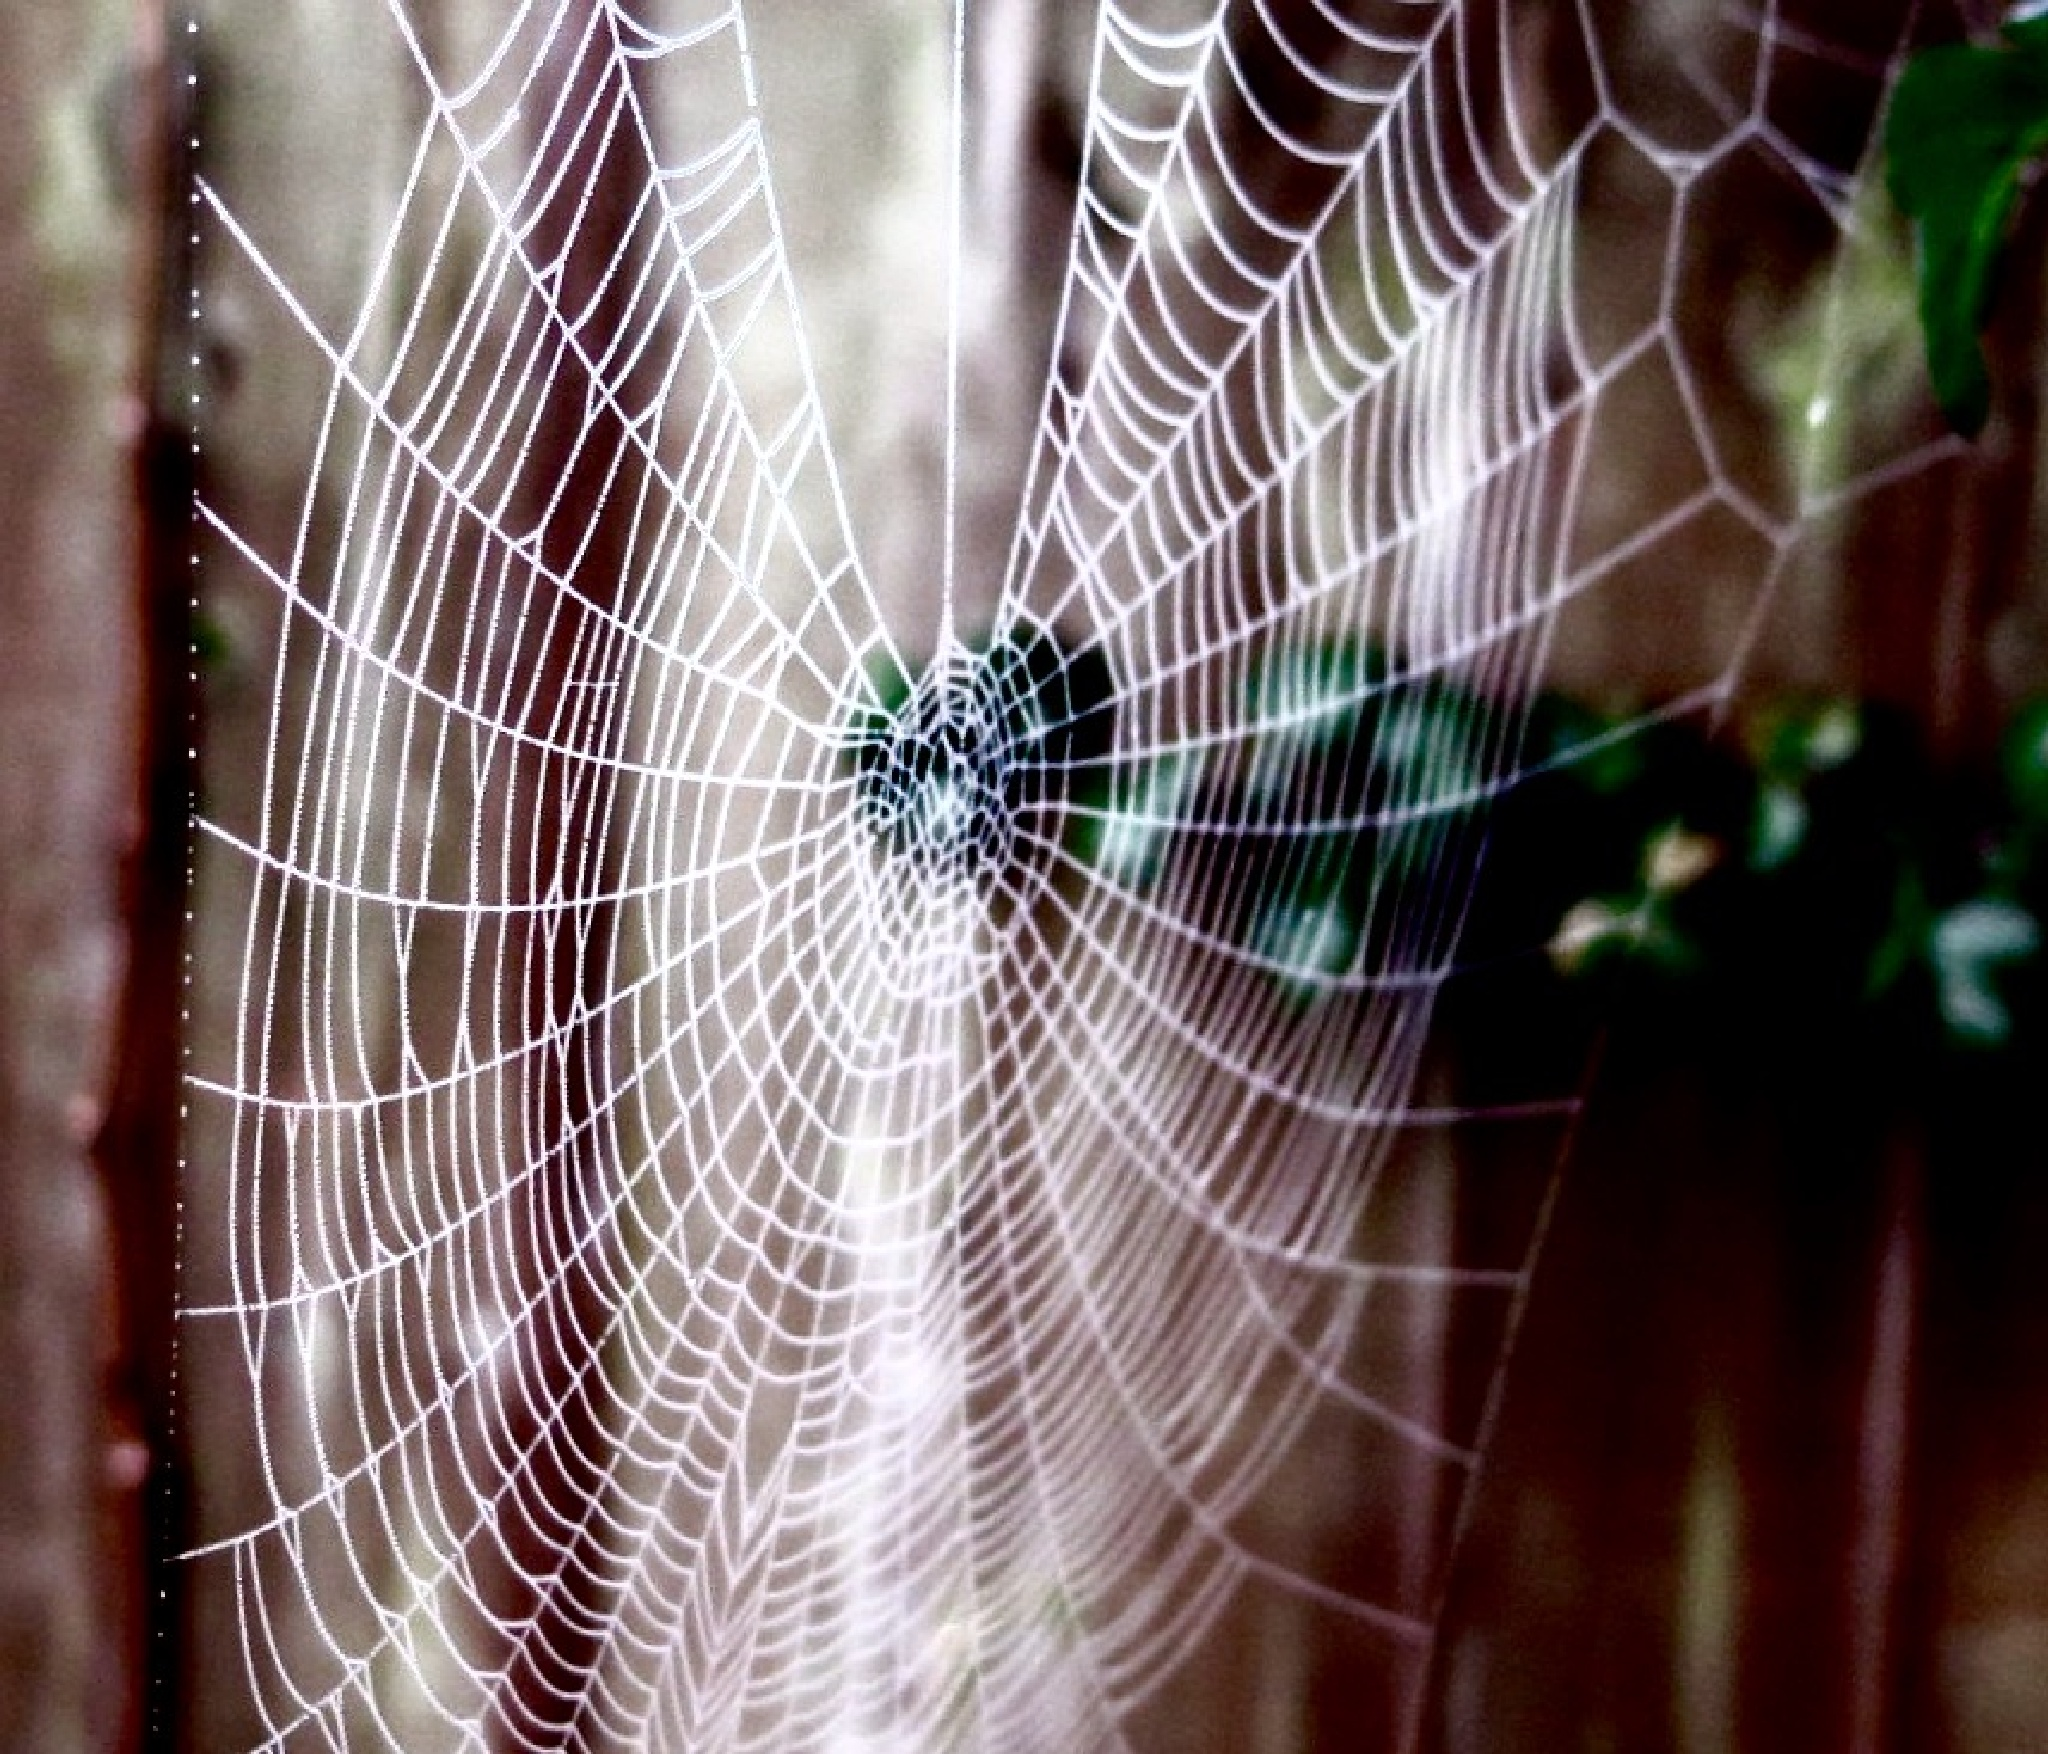 Spiders web by Terry Reynolds